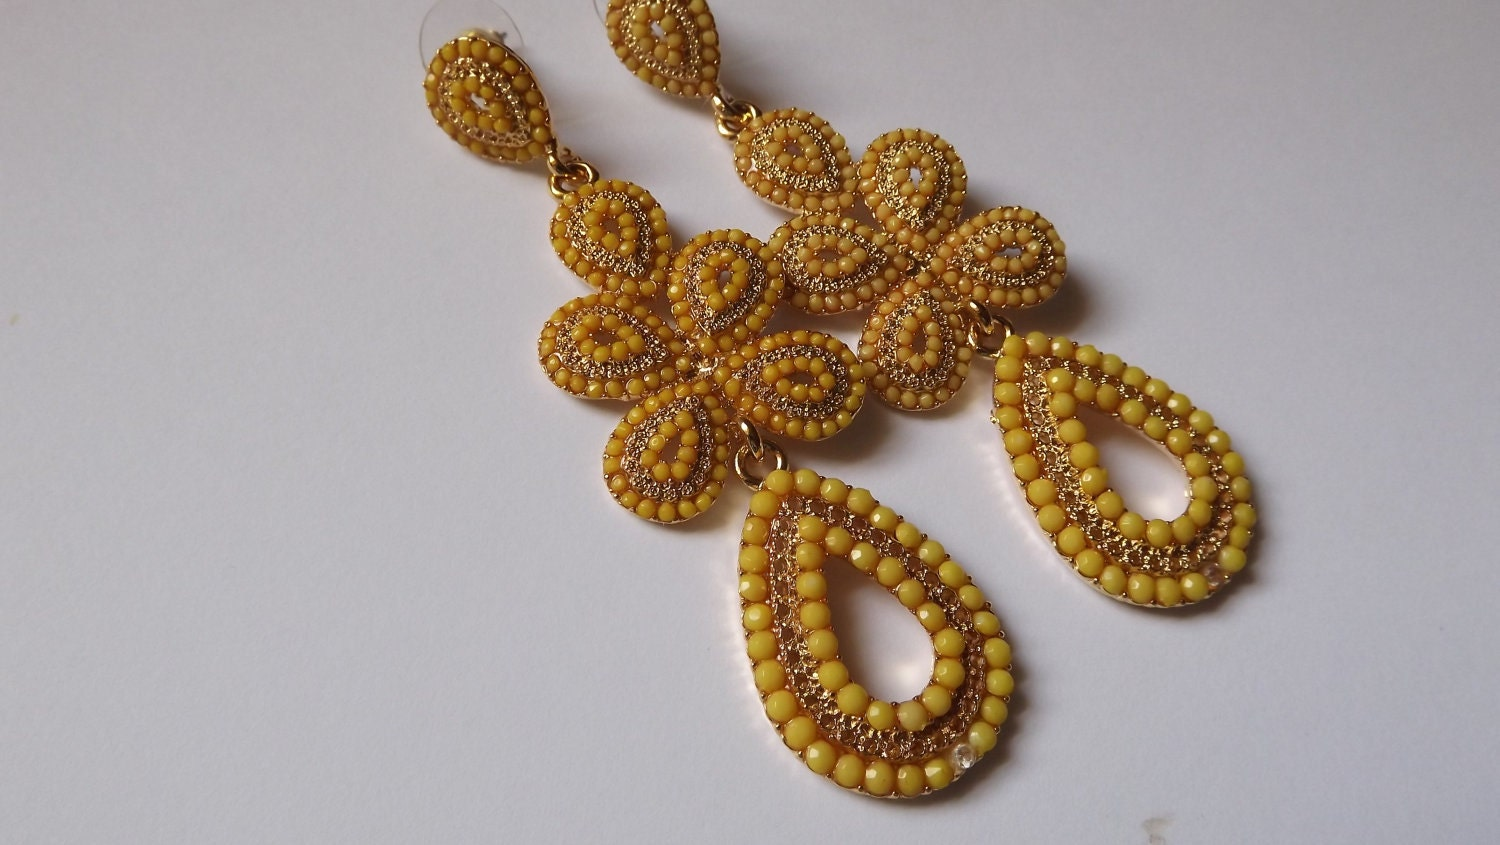 Sale 35% OFF Yellow Earrings and Gold Tone Stunning Chandelier earrings WAS 55.00 NOW 35.75